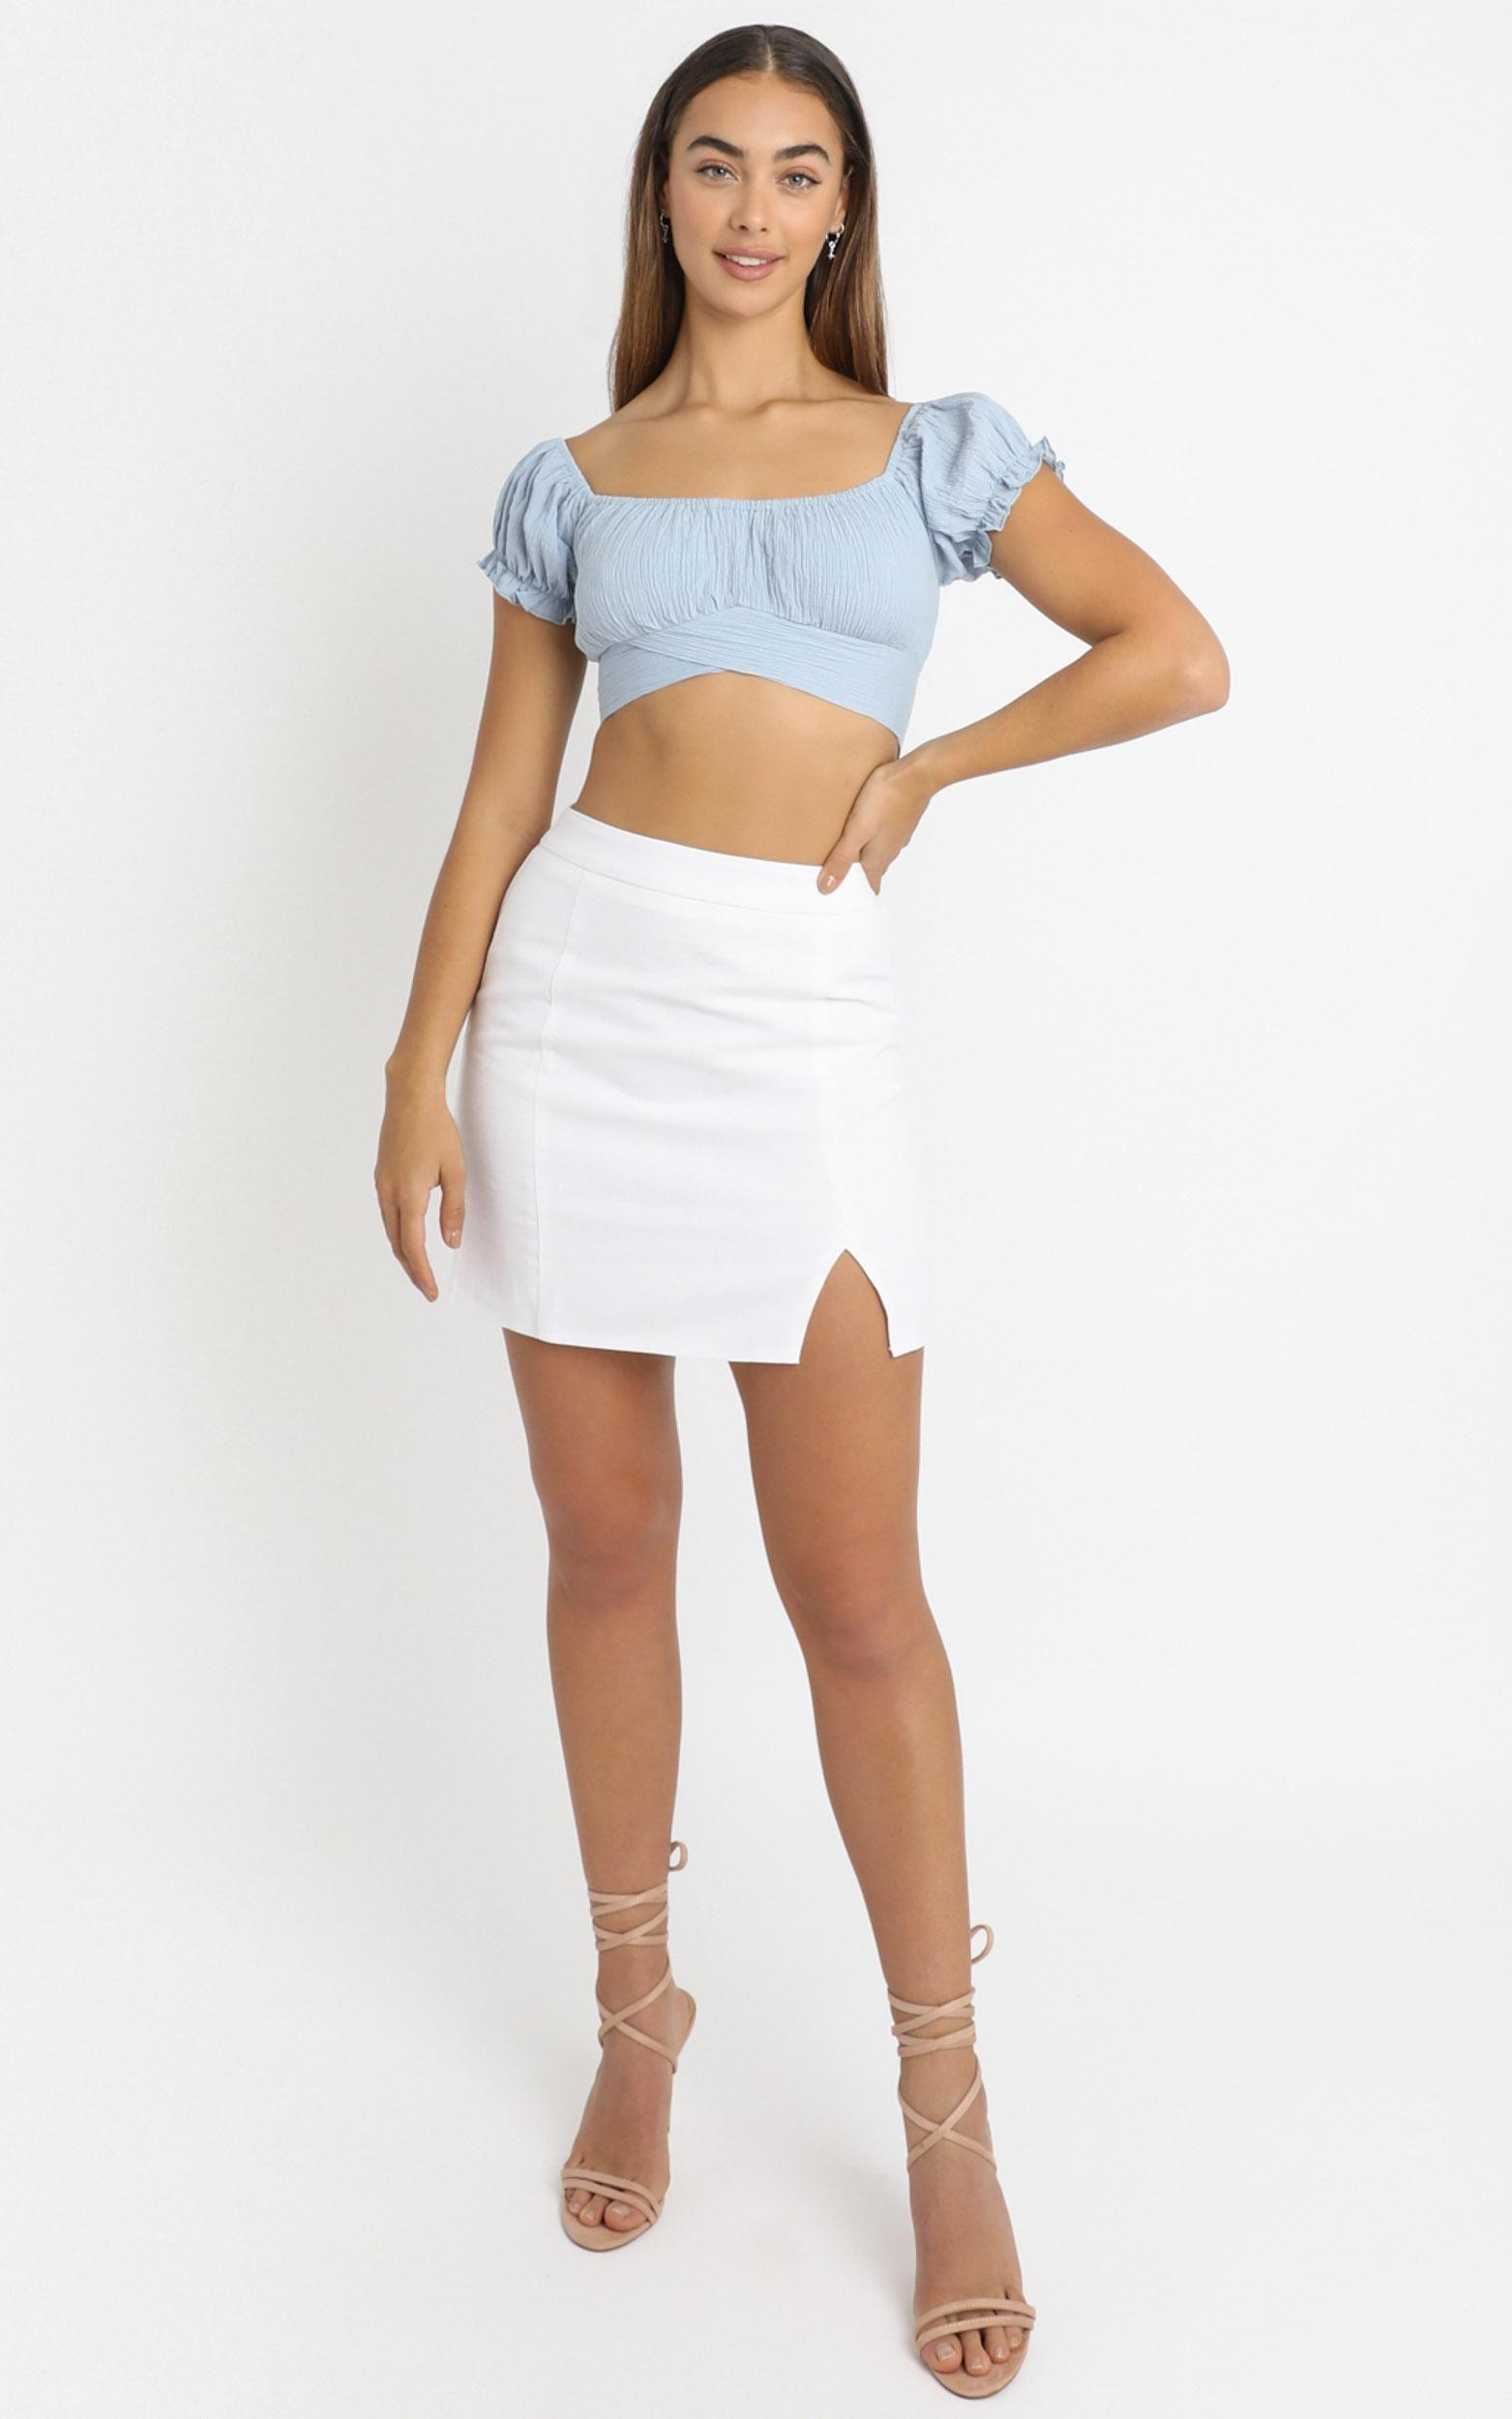 I Know You Top in sky blue linen look - 6 (XS), Blue, hi-res image number null